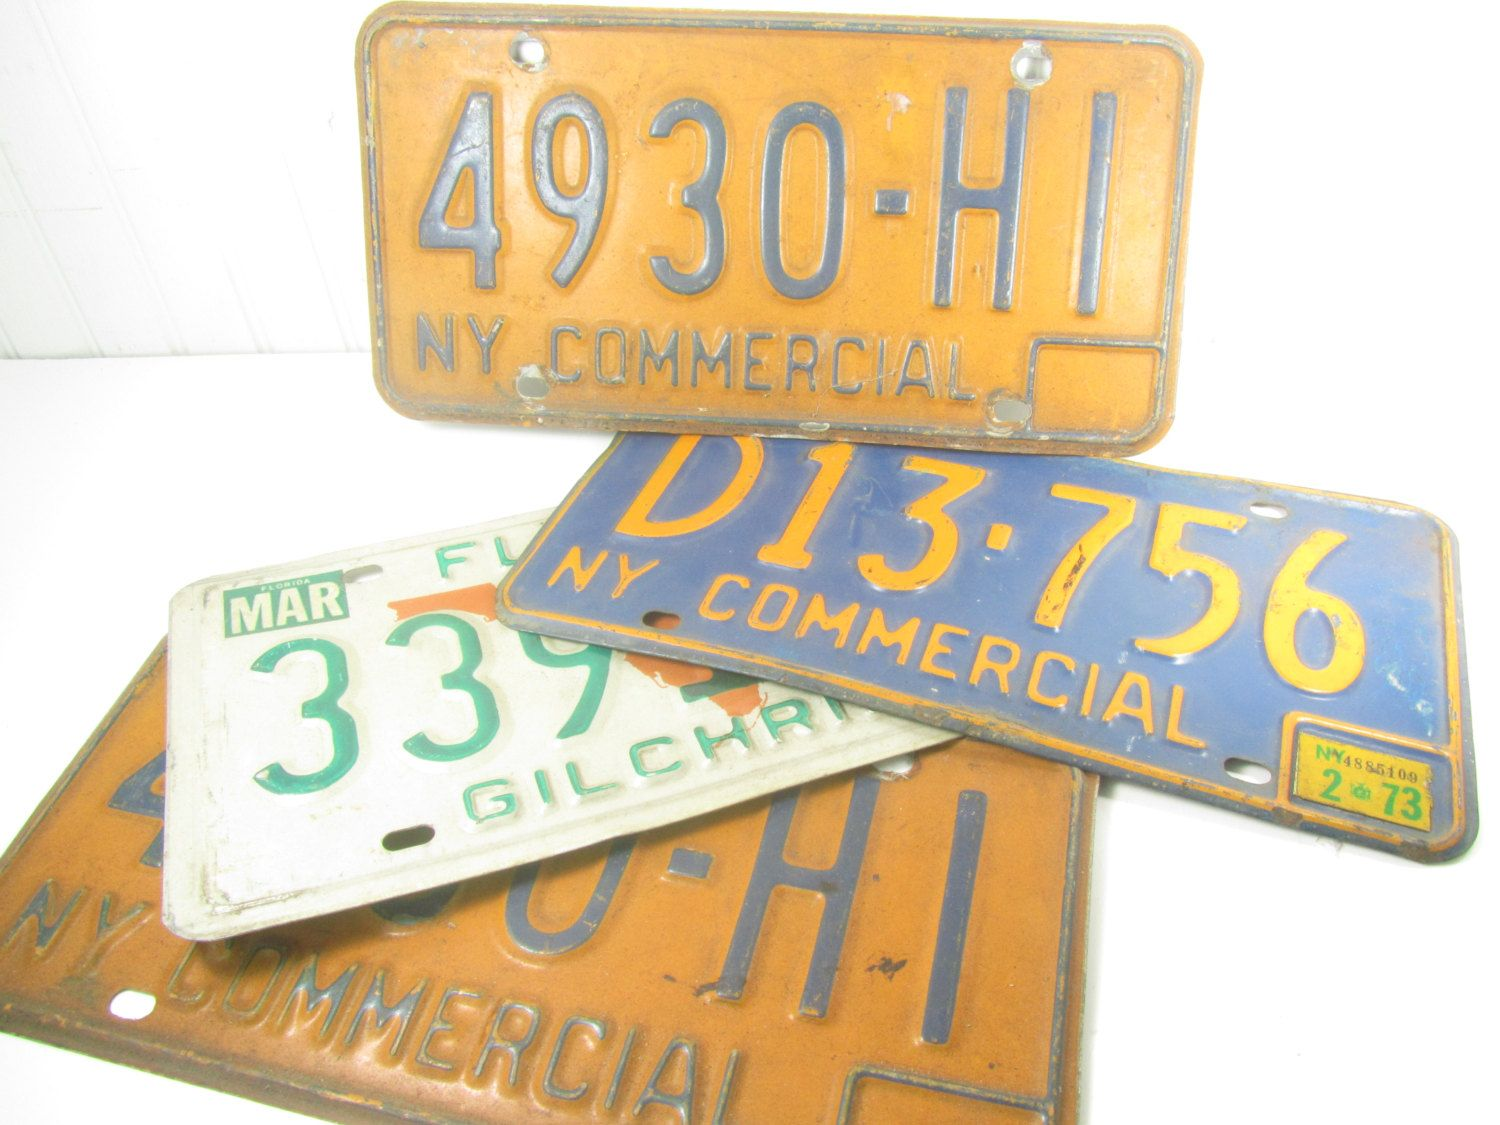 Vintage License Plates Rusty License Plates Vintage Car Tags Florida License Plate  sc 1 st  Pinterest & Vintage License Plates Rusty License Plates Vintage Car Tags ...